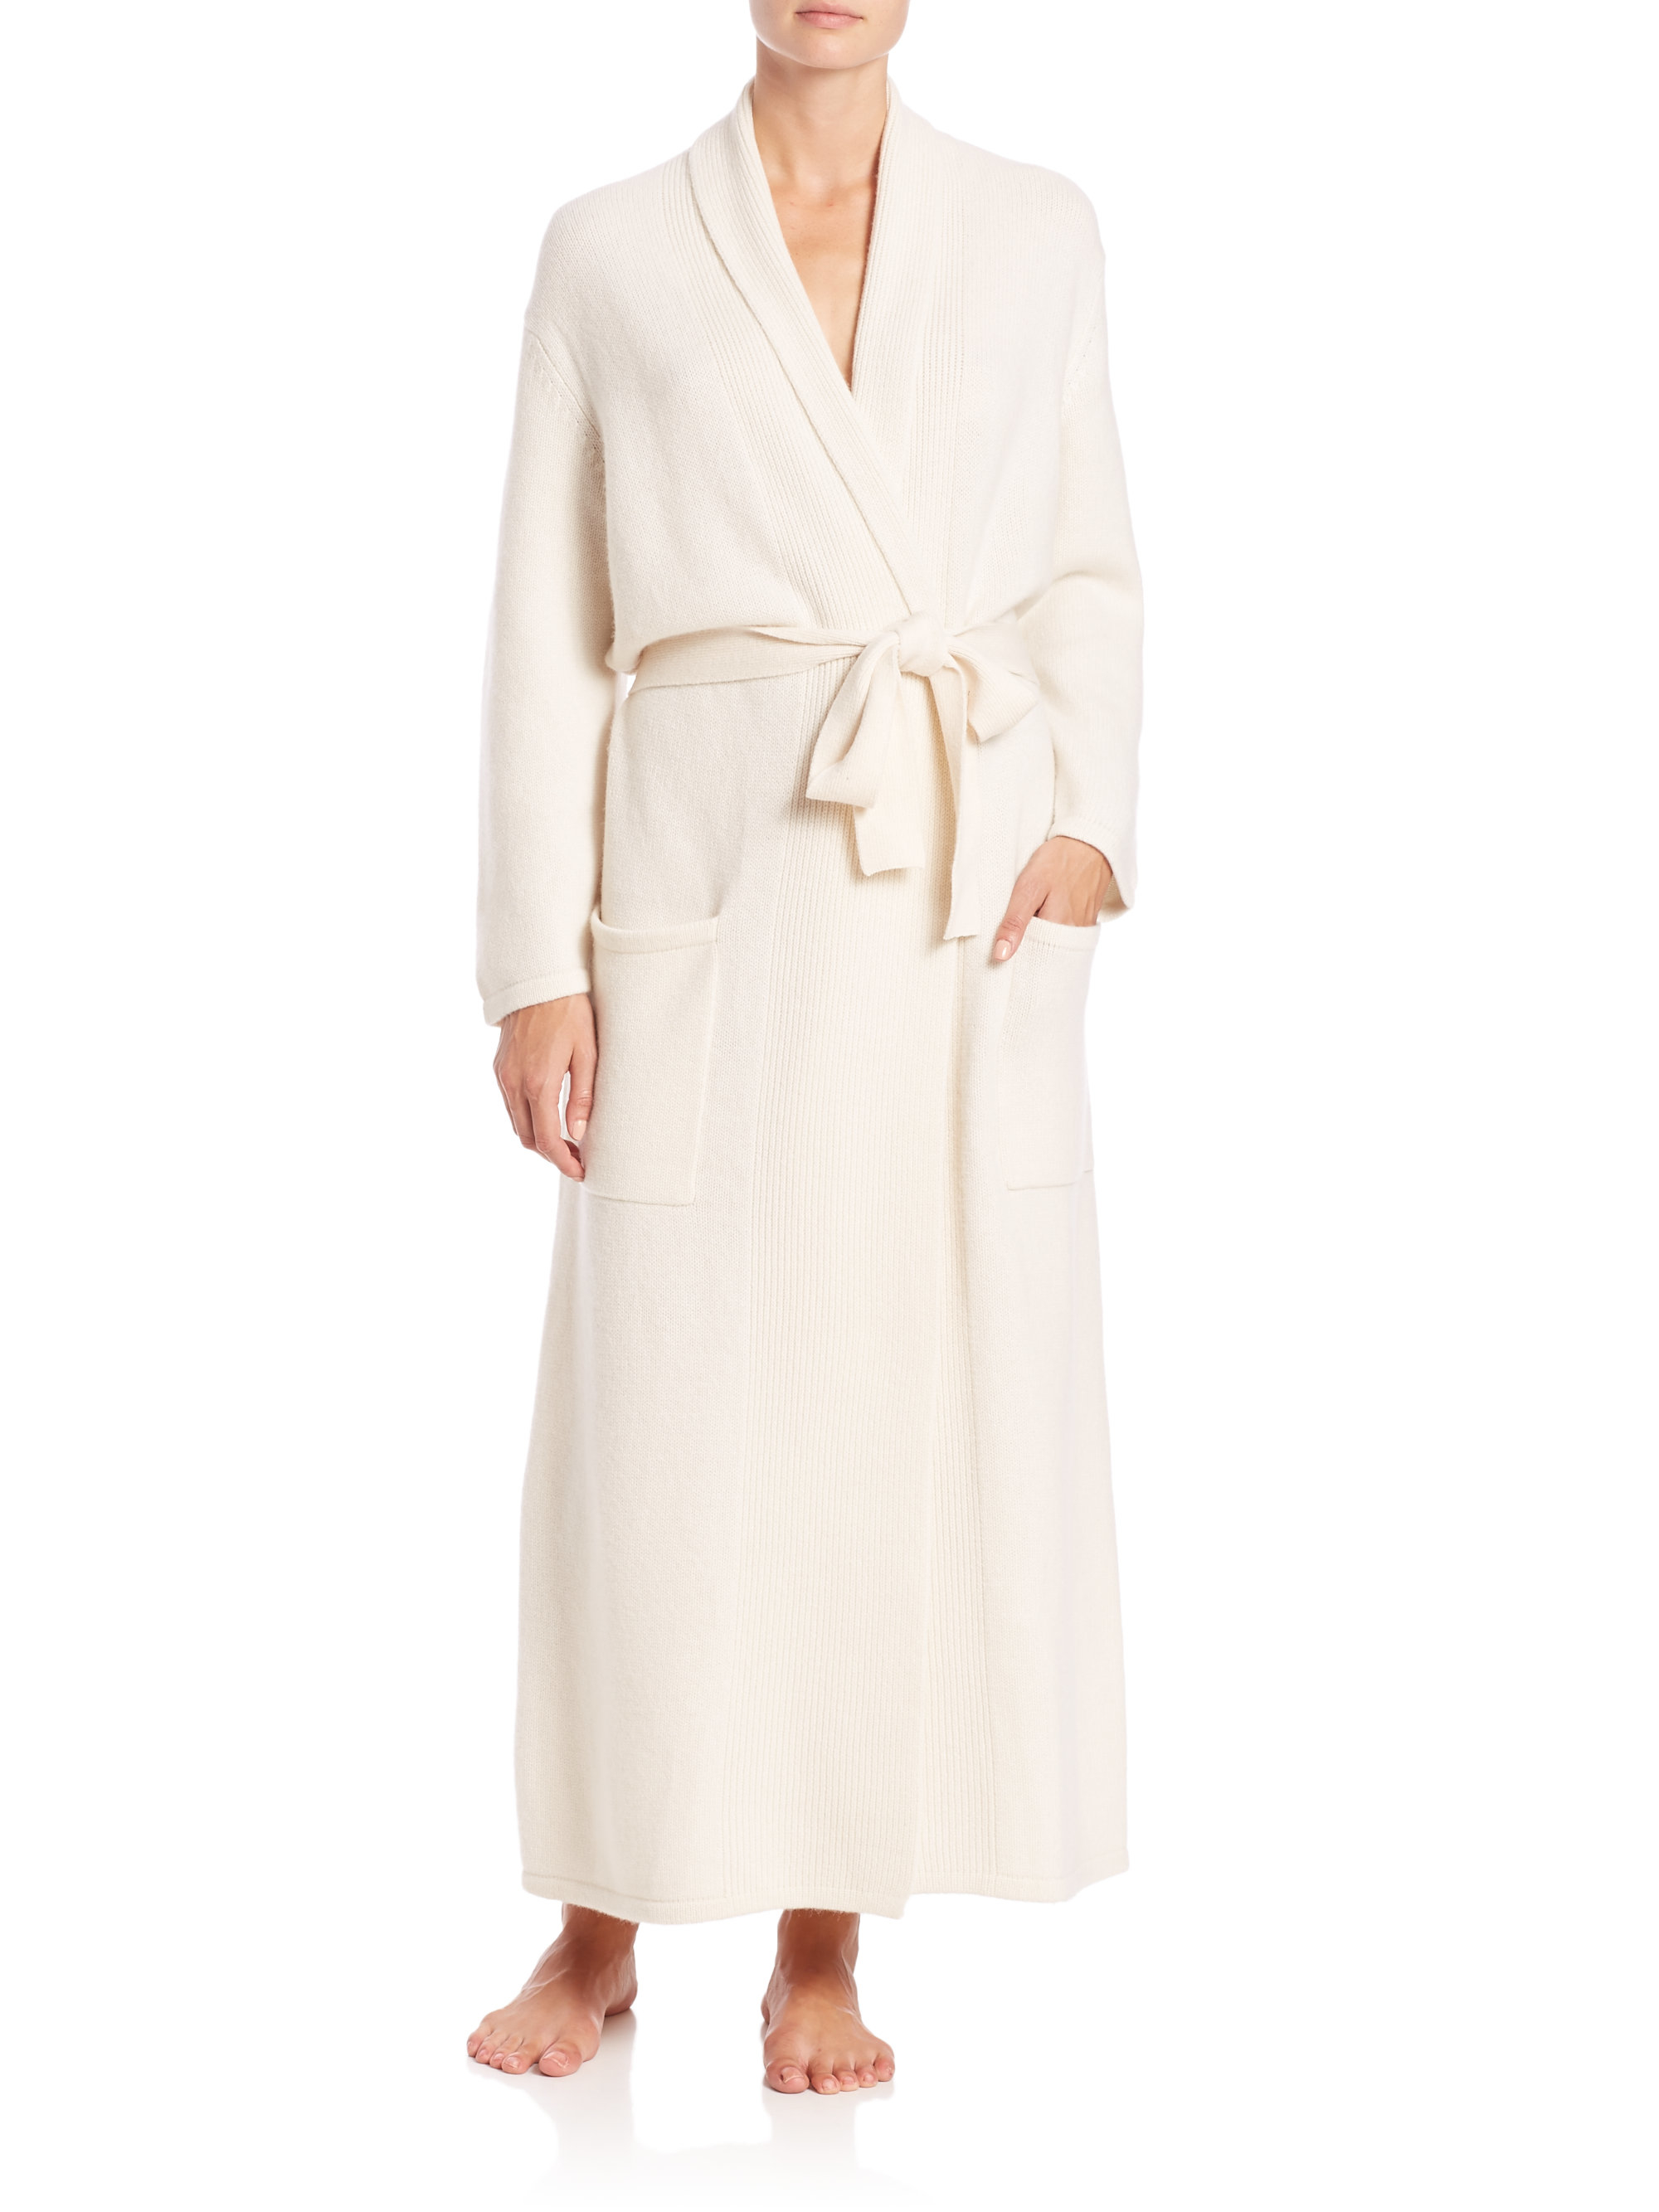 Saks fifth avenue cashmere robe in white lyst for Saks 5th avenue robes de mariage